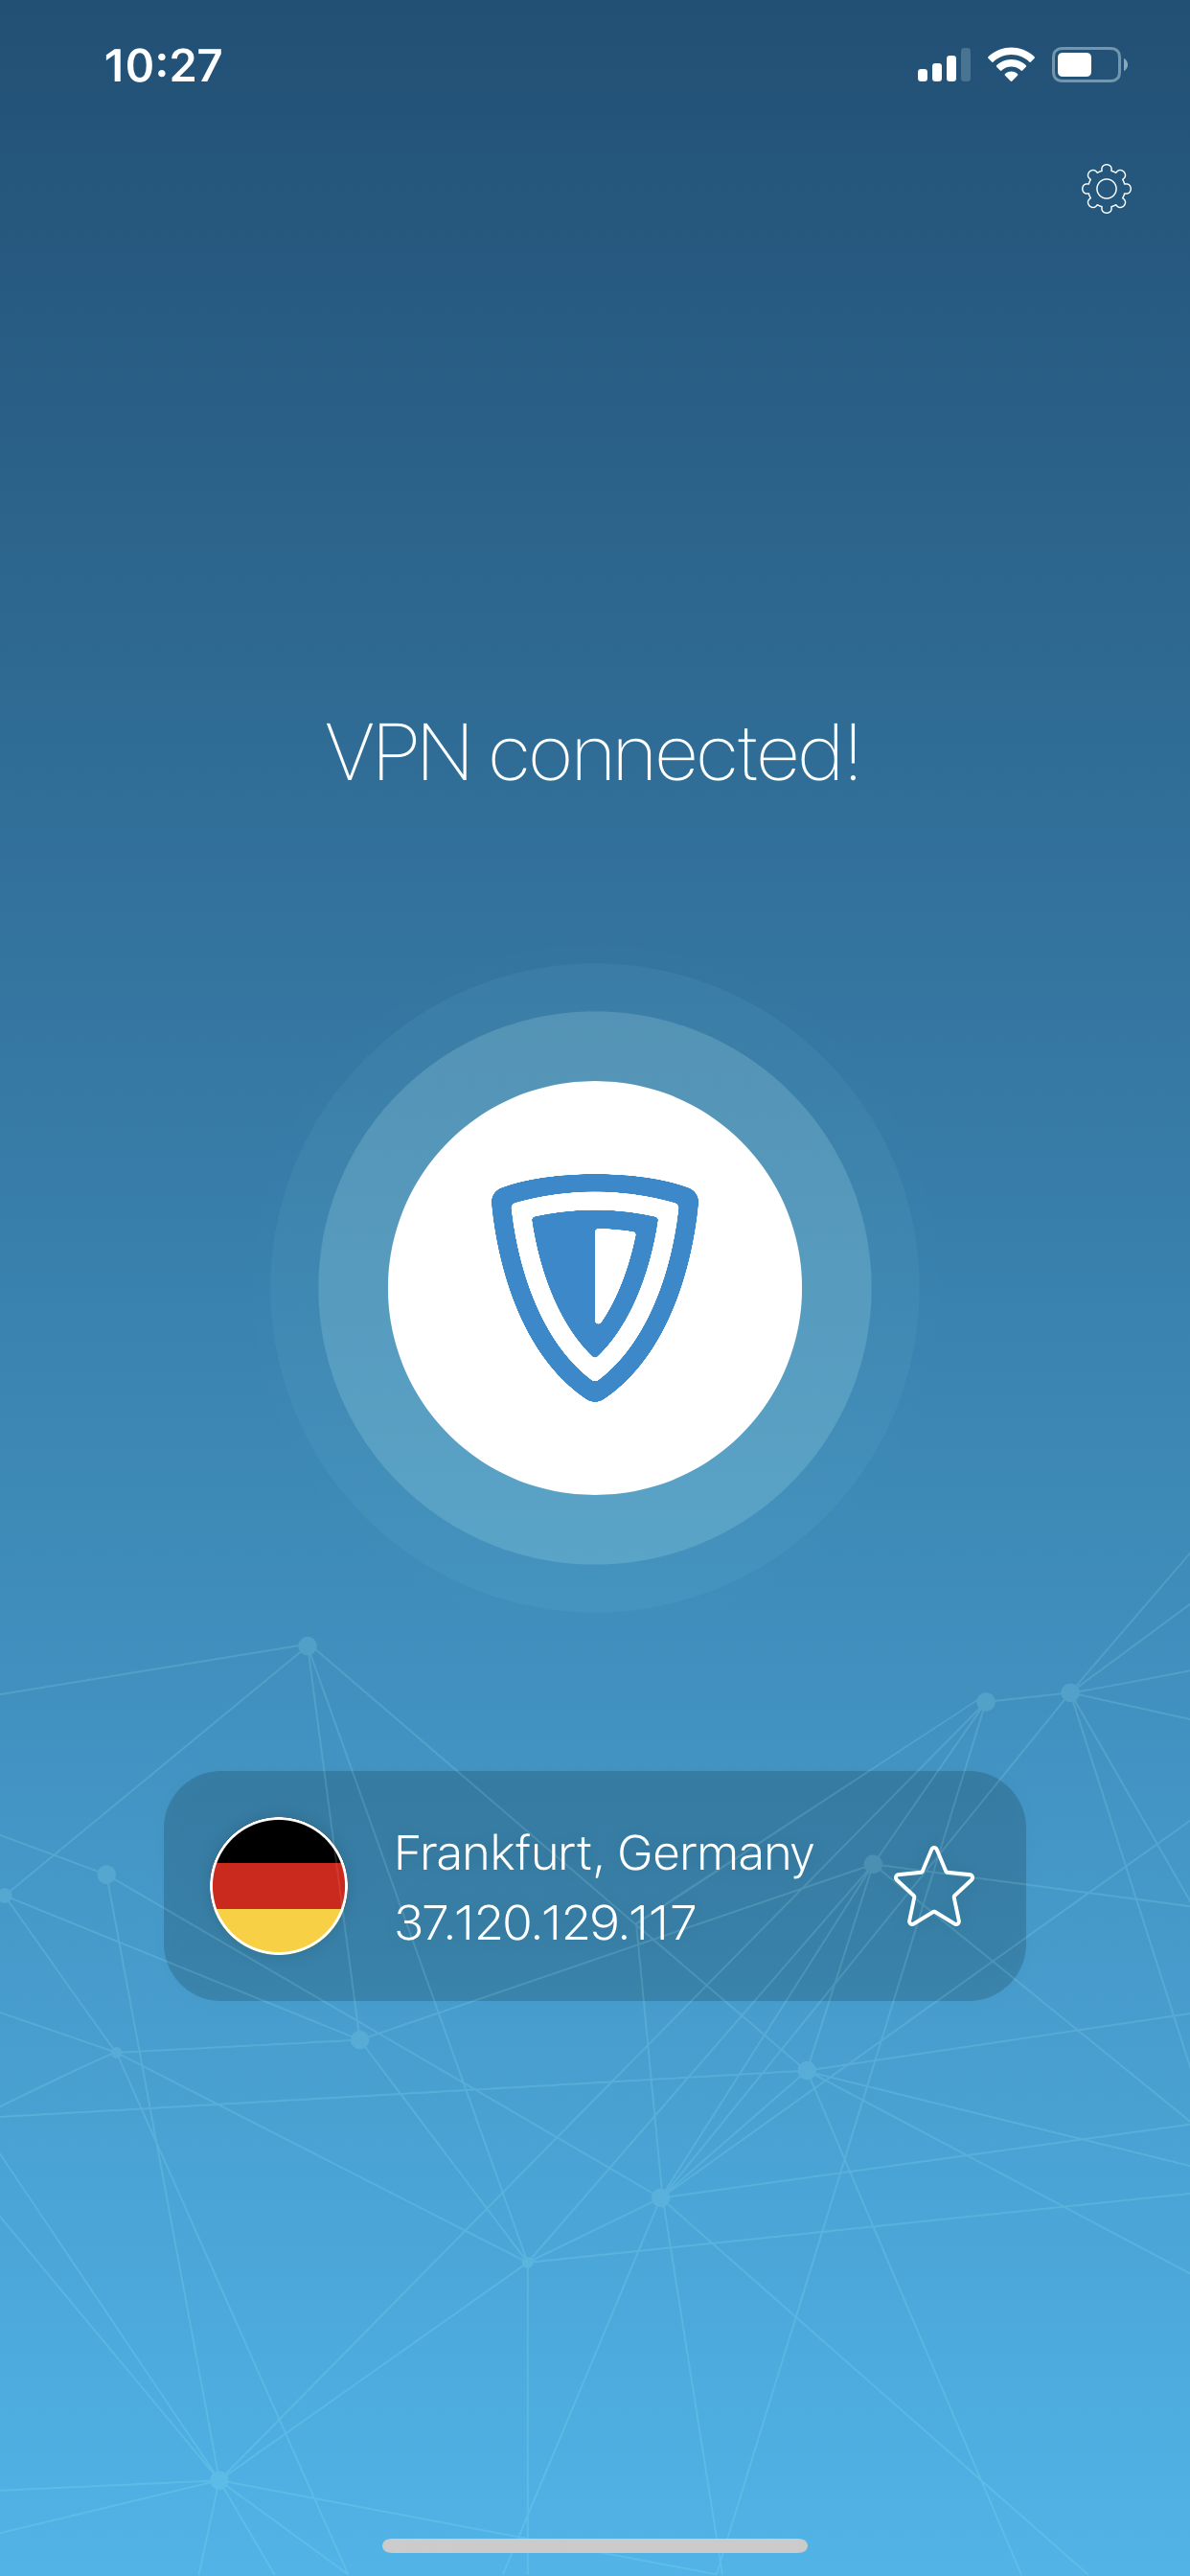 ZenMate VPN Screenshot